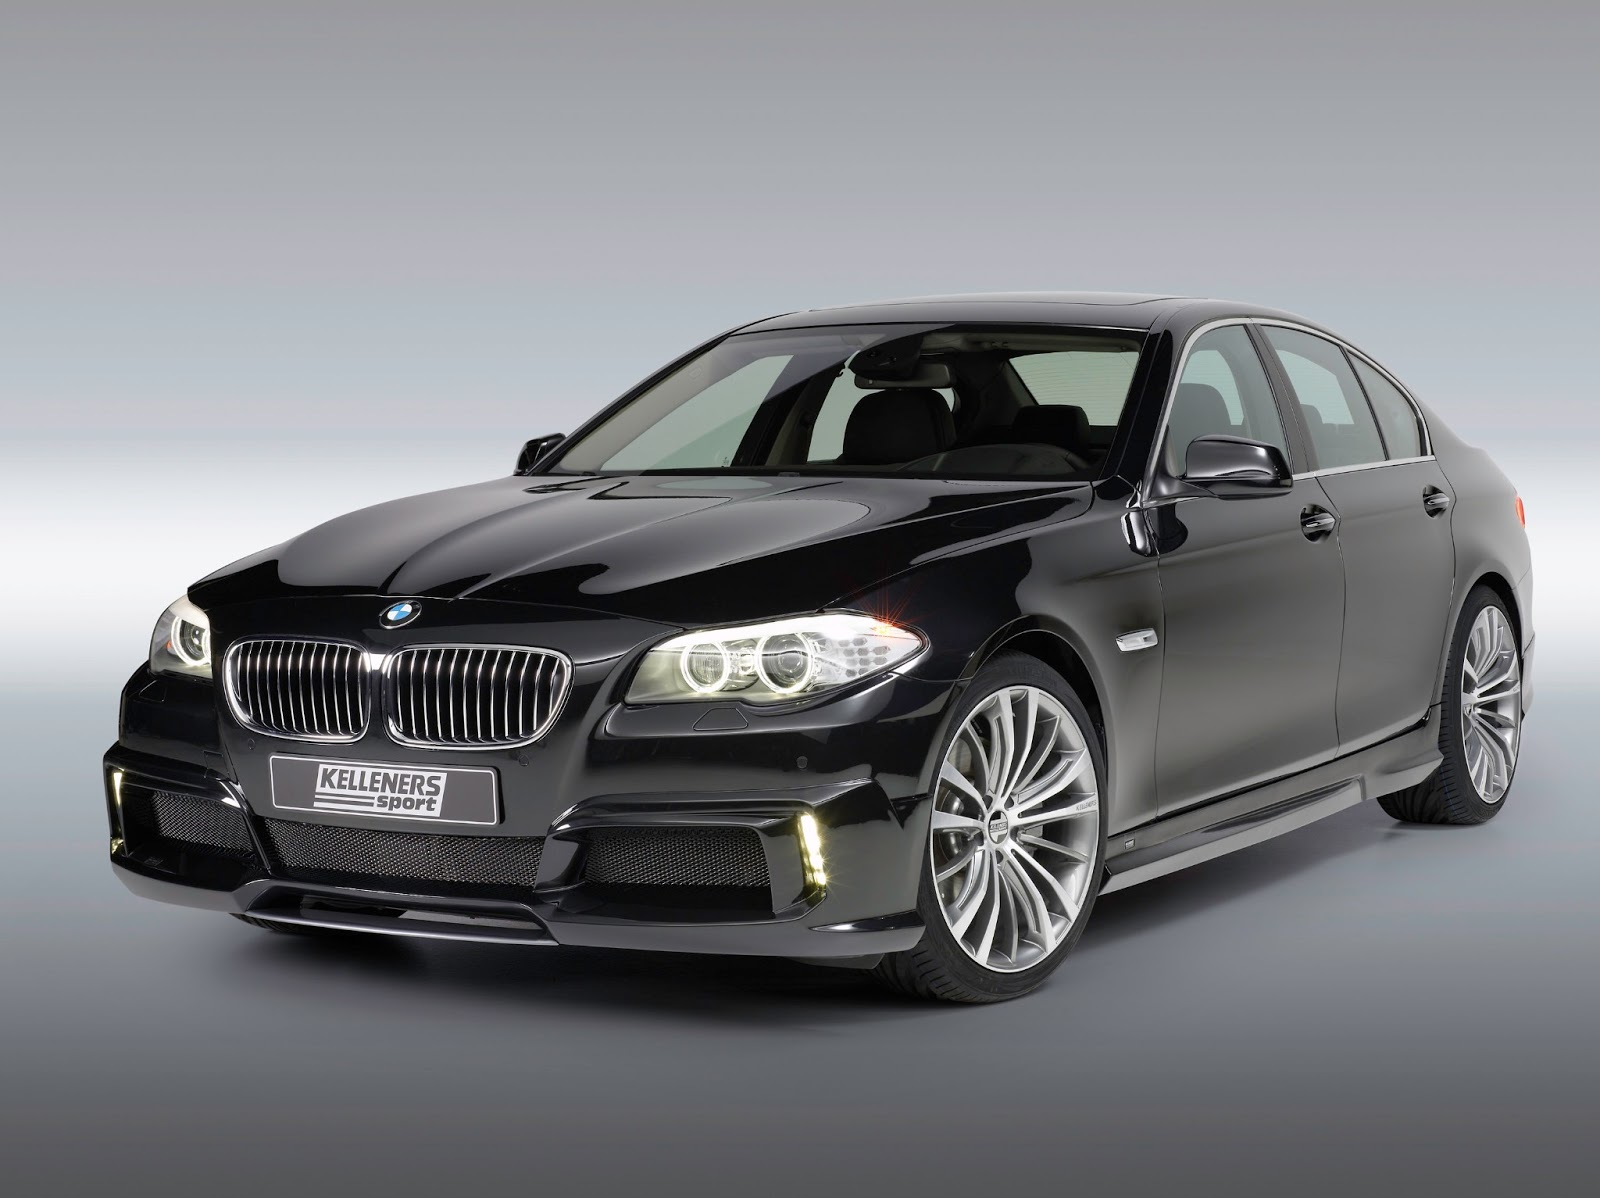 cars gto 2011 kelleners sport bmw 535i. Black Bedroom Furniture Sets. Home Design Ideas